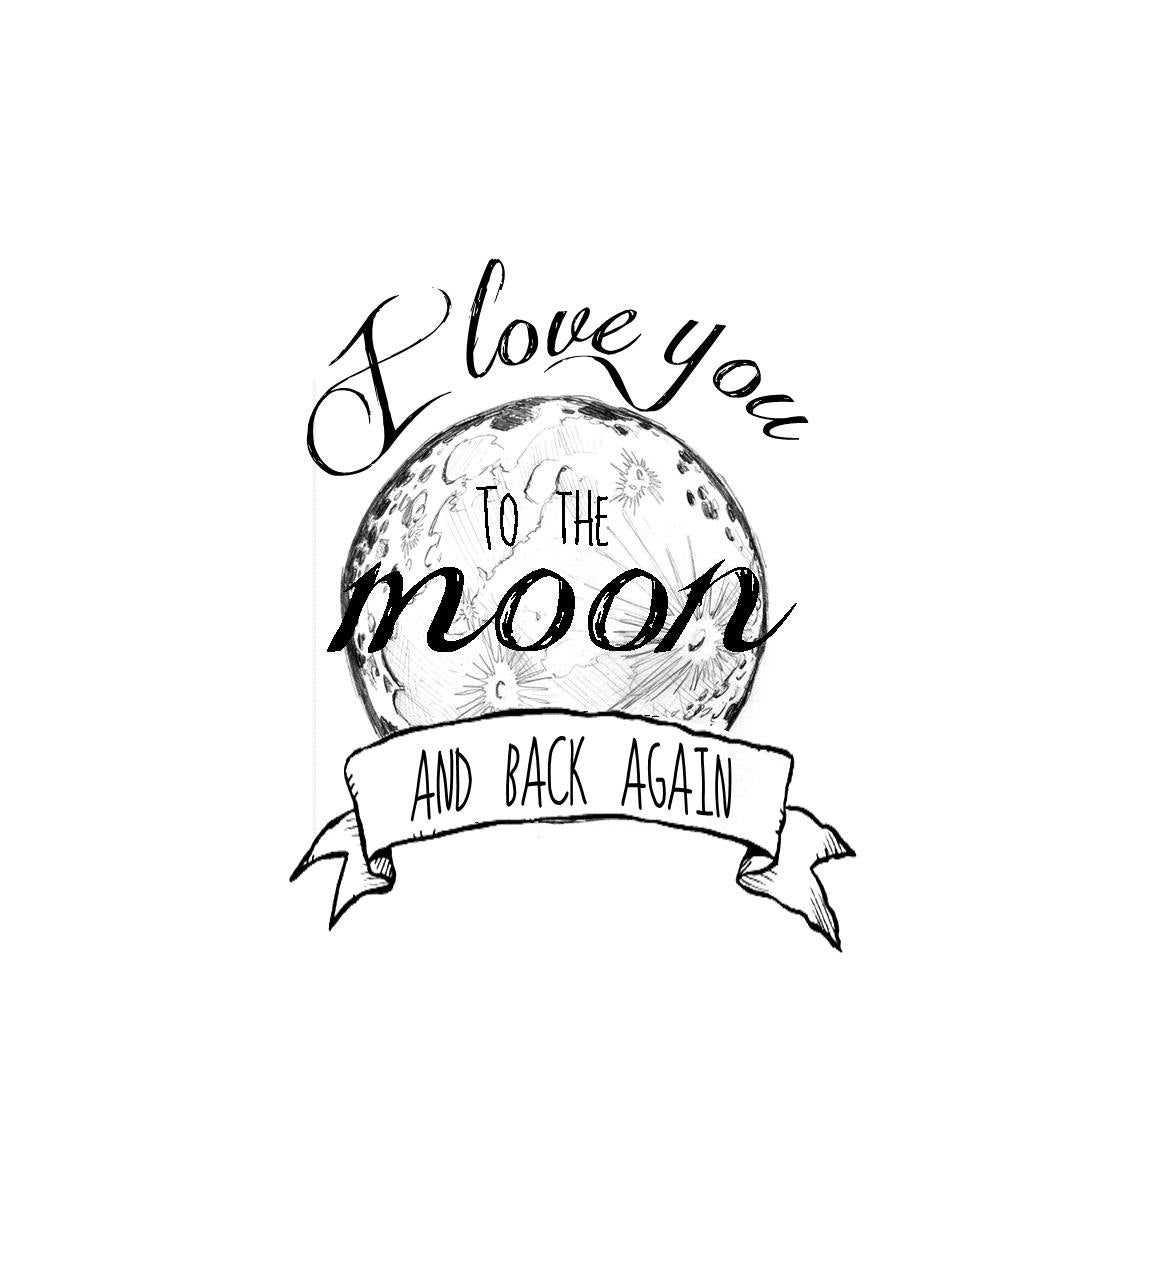 Request a custom order and have something made just for you I Love You To The Moon And Back Tattoo Ideas